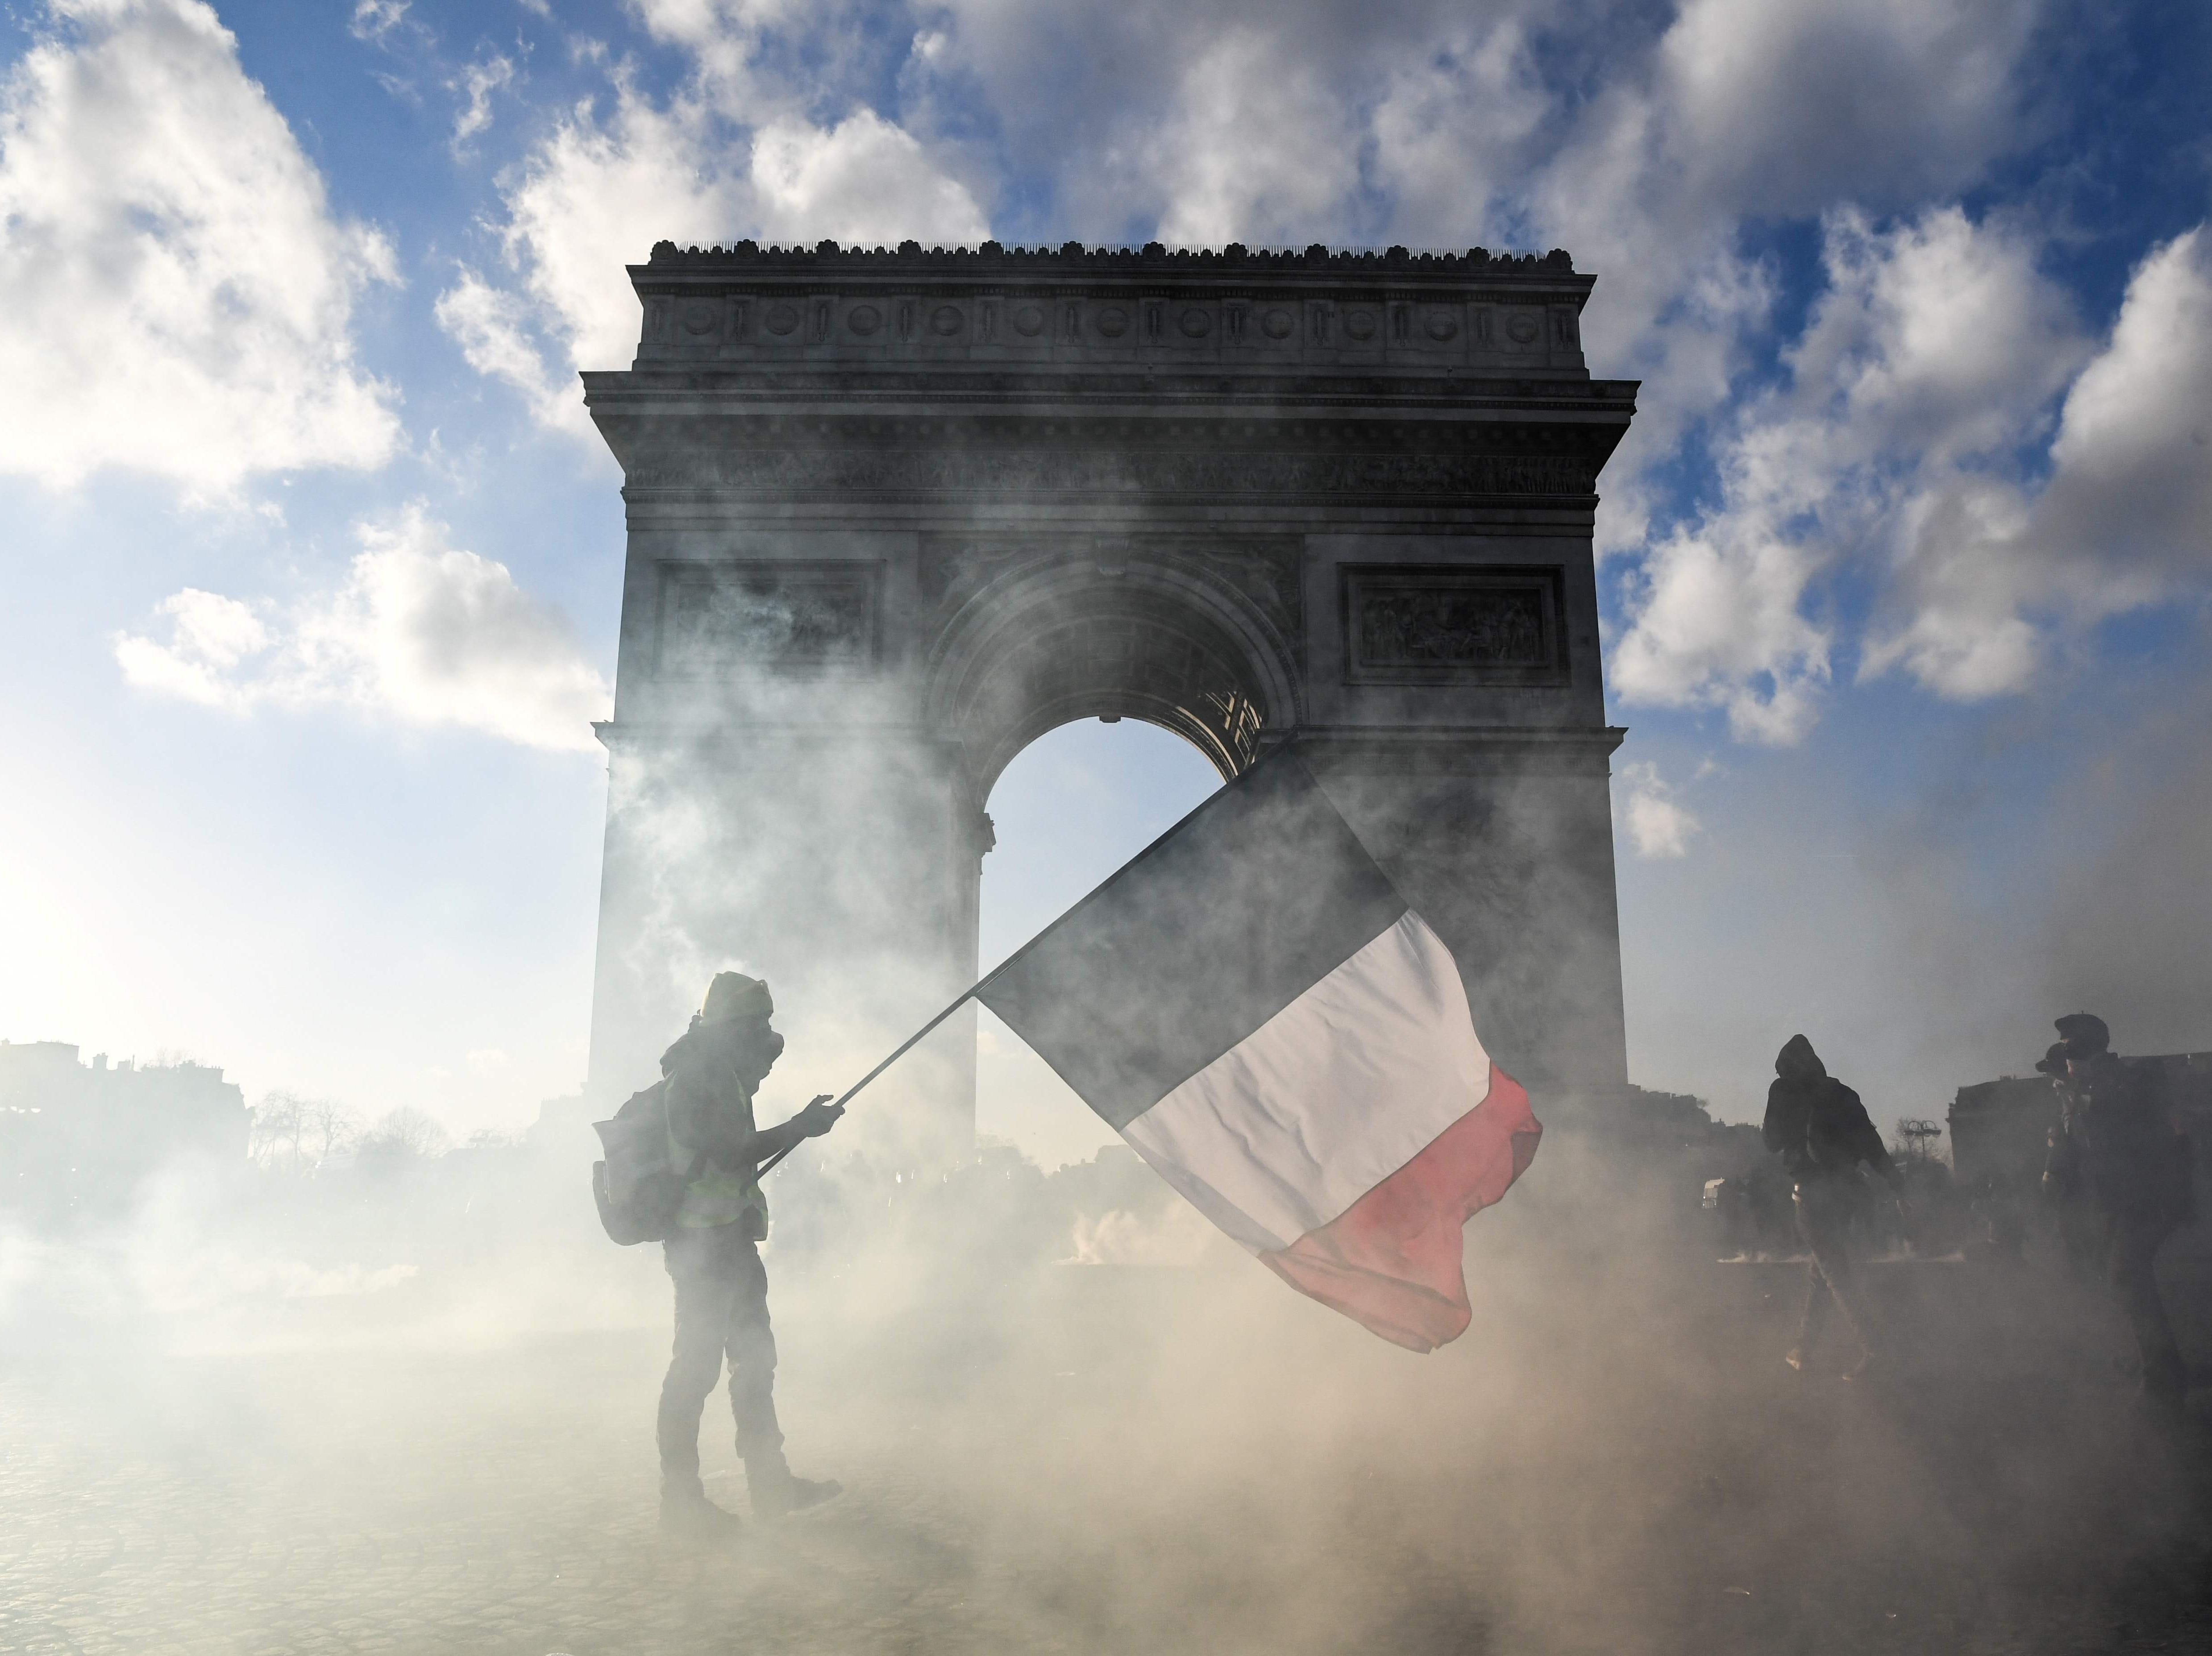 A protester holds a French national flag as he walks among tear gas smoke past the Arc de Triomphe on the Place de l'Etoile in Paris on March 16, 2019, during clashes between Yellow Vest protesters and riot police forces, on the 18th consecutive Saturday of demonstrations called by the 'Yellow Vest' (gilets jaunes) movement.